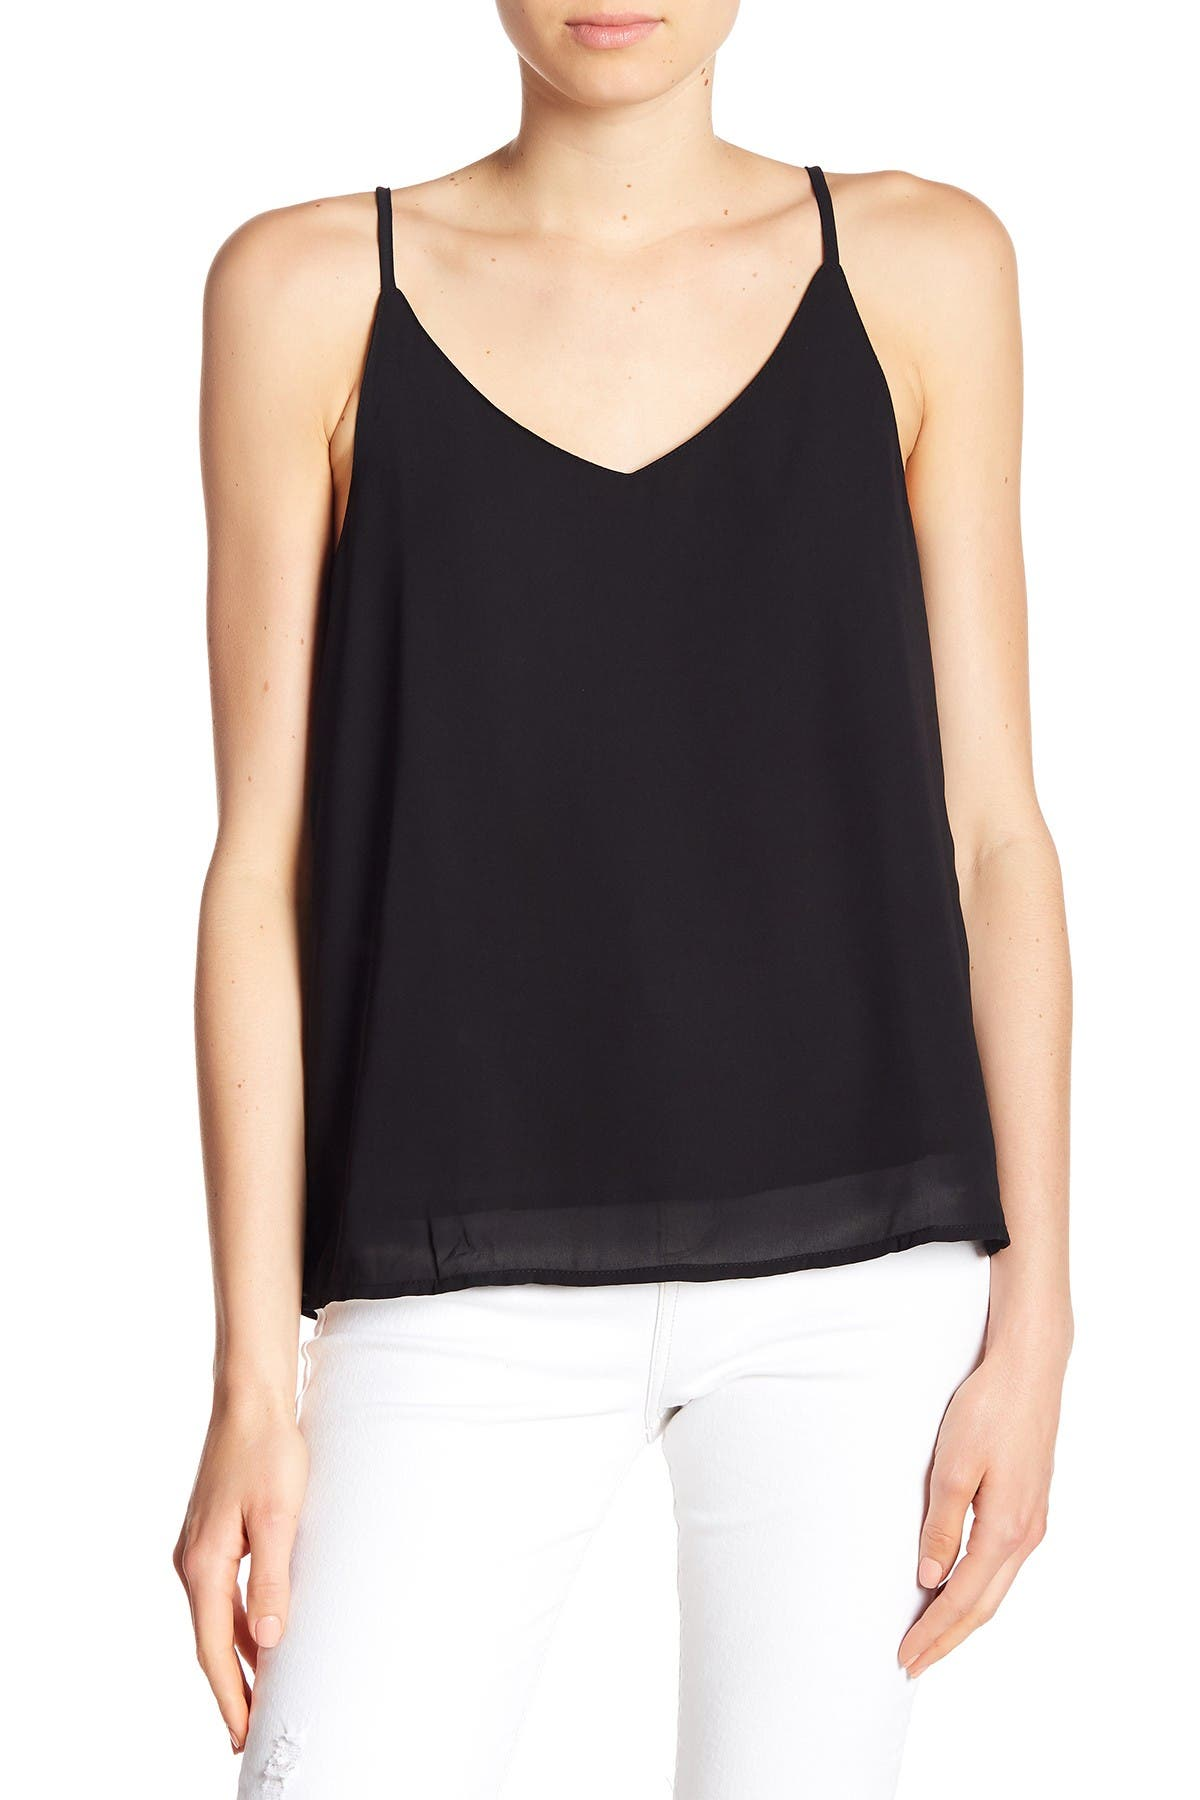 Image of Cotton On Astrid Tank Top